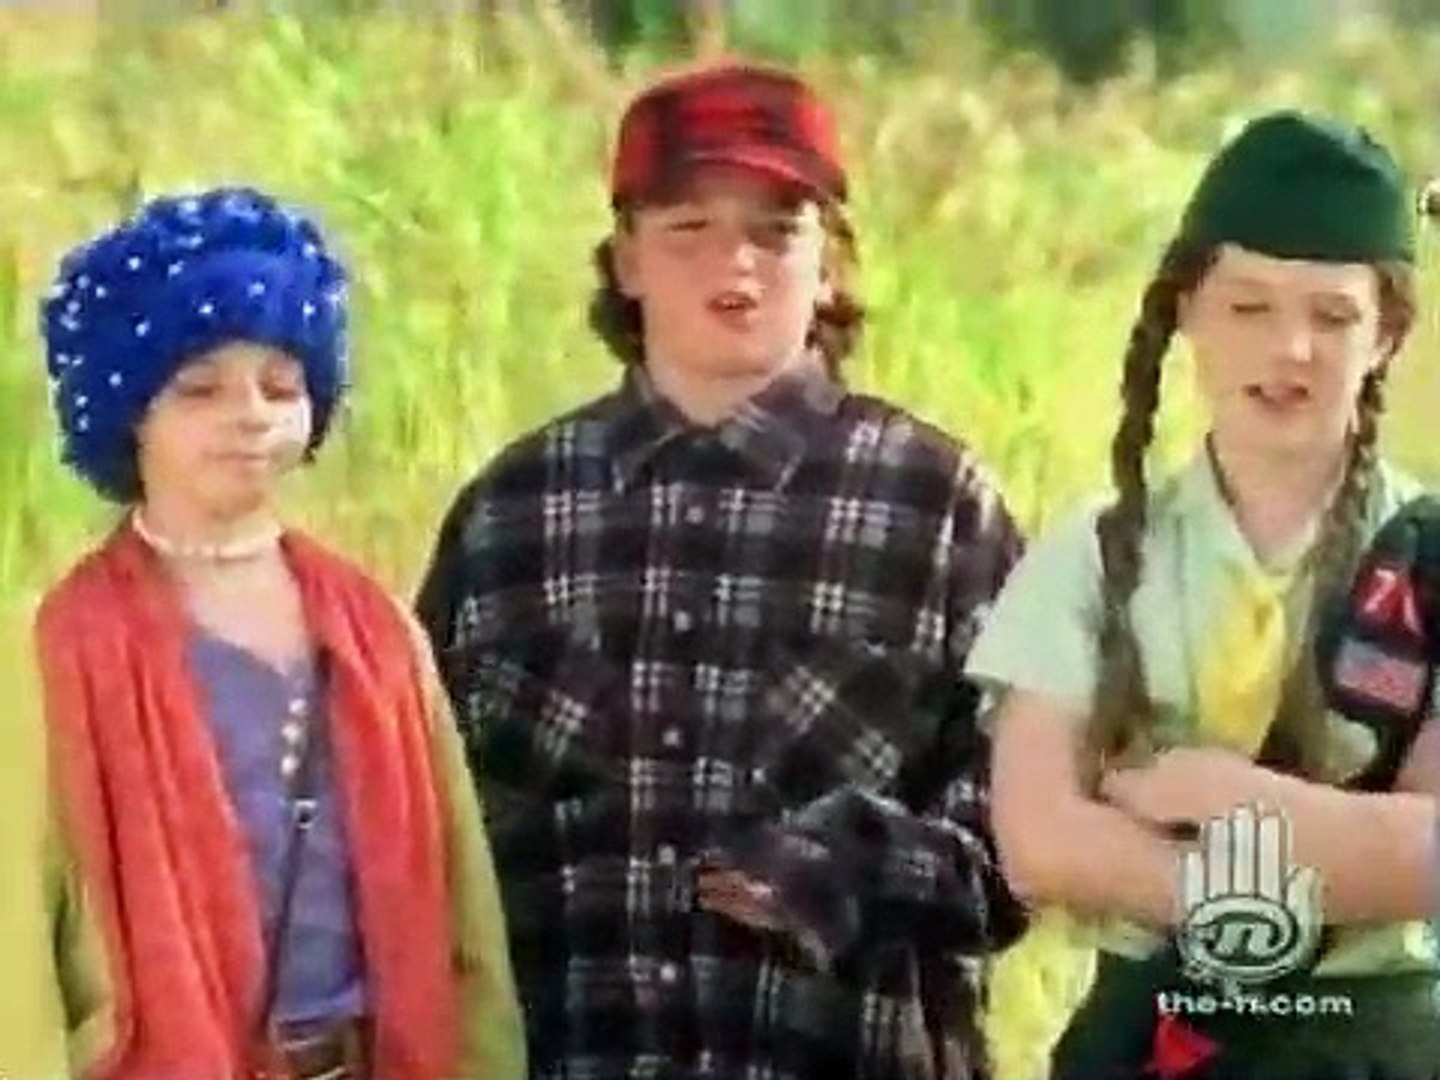 Adventures Of Pete And Pete Season 3 Episode 03 - The Good, The Bad And The Lucky